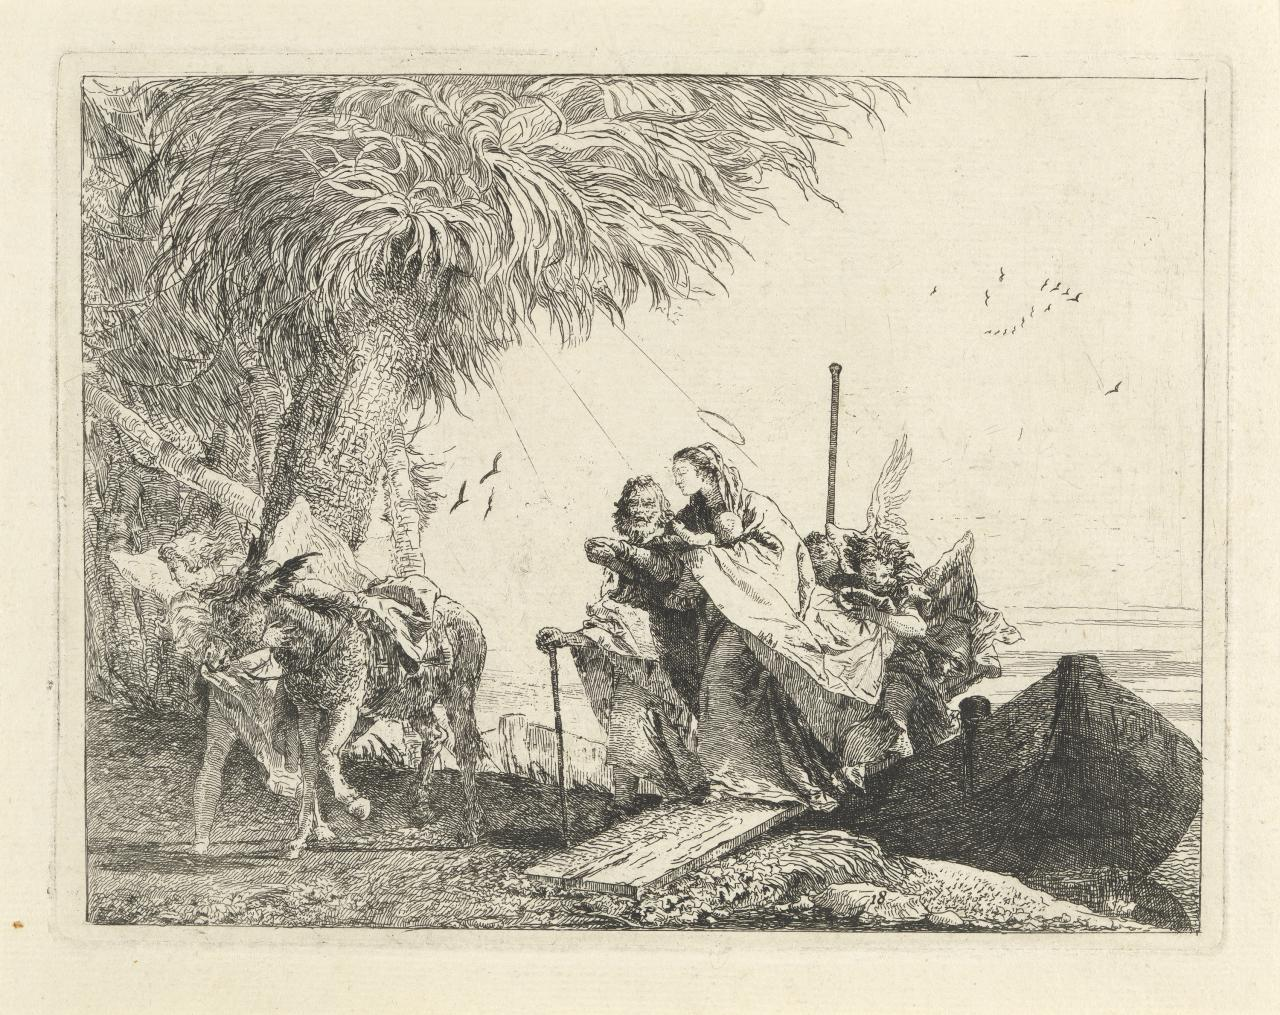 The Holy Family disembarking (Flight into Egypt)